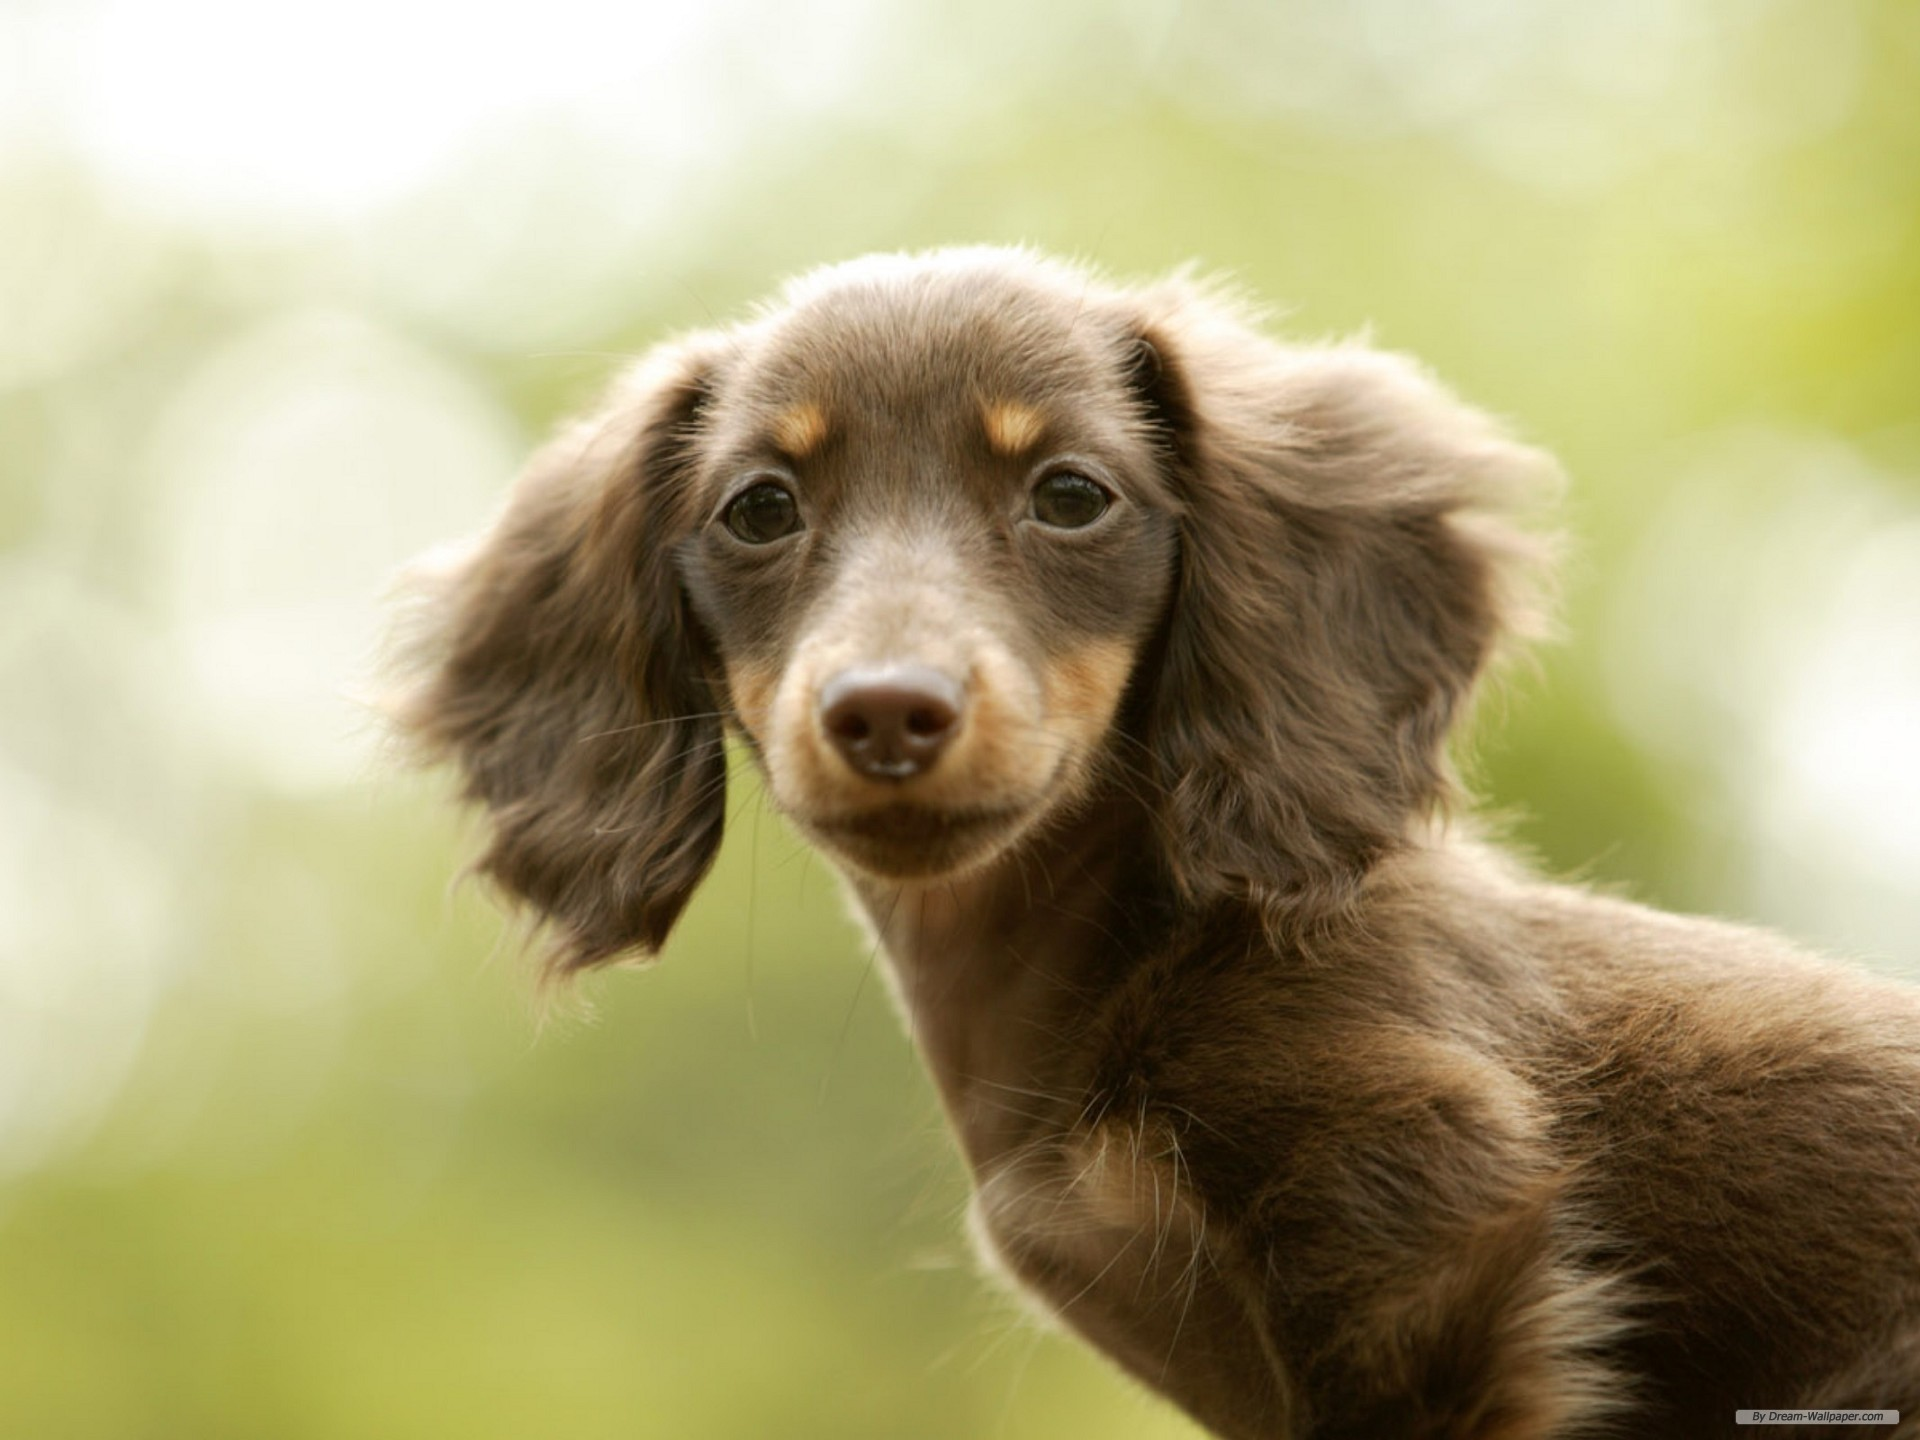 1920x1440 Free Animal wallpaper - Miniature Dachshund wallpaper -  wallpaper  - Index 15.